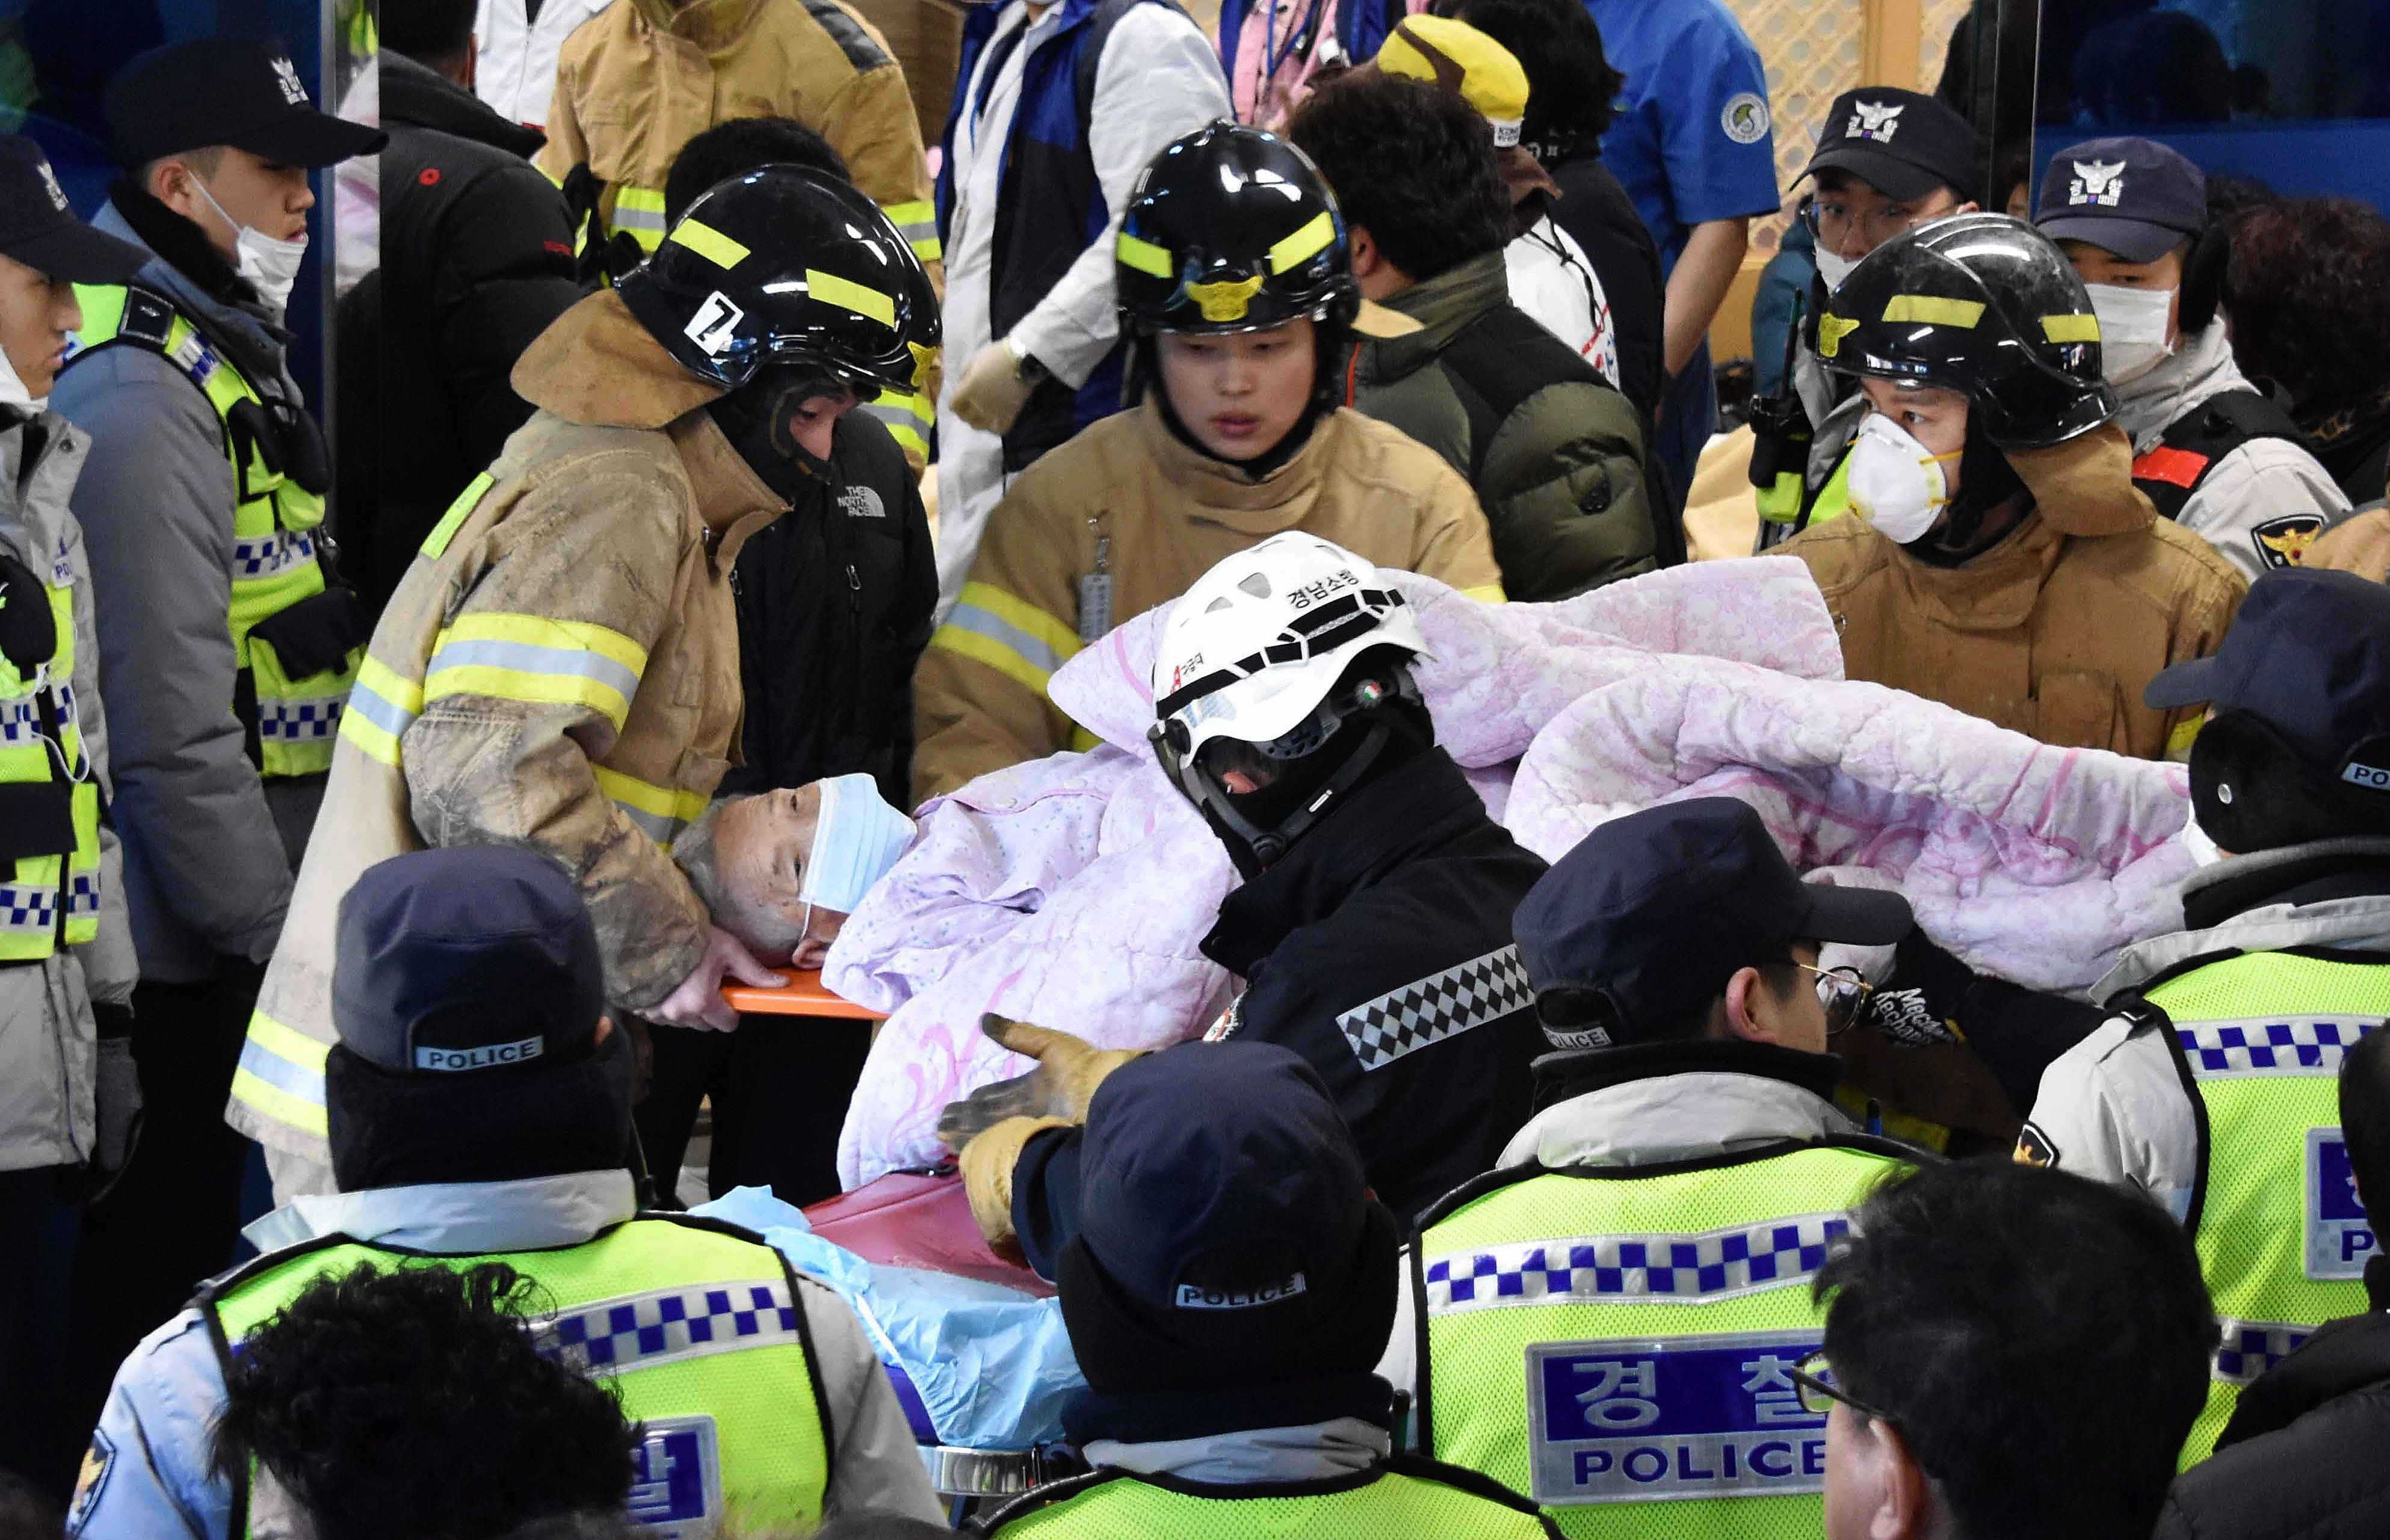 MIRYANG, SOUTH KOREA - JANUARY 26: (SOUTH KOREA OUT) In this handout picture provided by the Kim Gu Yeon-Gyeongnam Domin Ilbo, Rescue workers remove a survivor from a hospital fire on January 26, 2018 in Miryang, South Korea. 40 people were killed in a fire at a hospital in the southeastern city of Miryang early Friday, with the number of casualties likely to rise further.  (Photo by Kim Gu-Yeon/Gyeongnam Domin Ilbo via Getty Images)